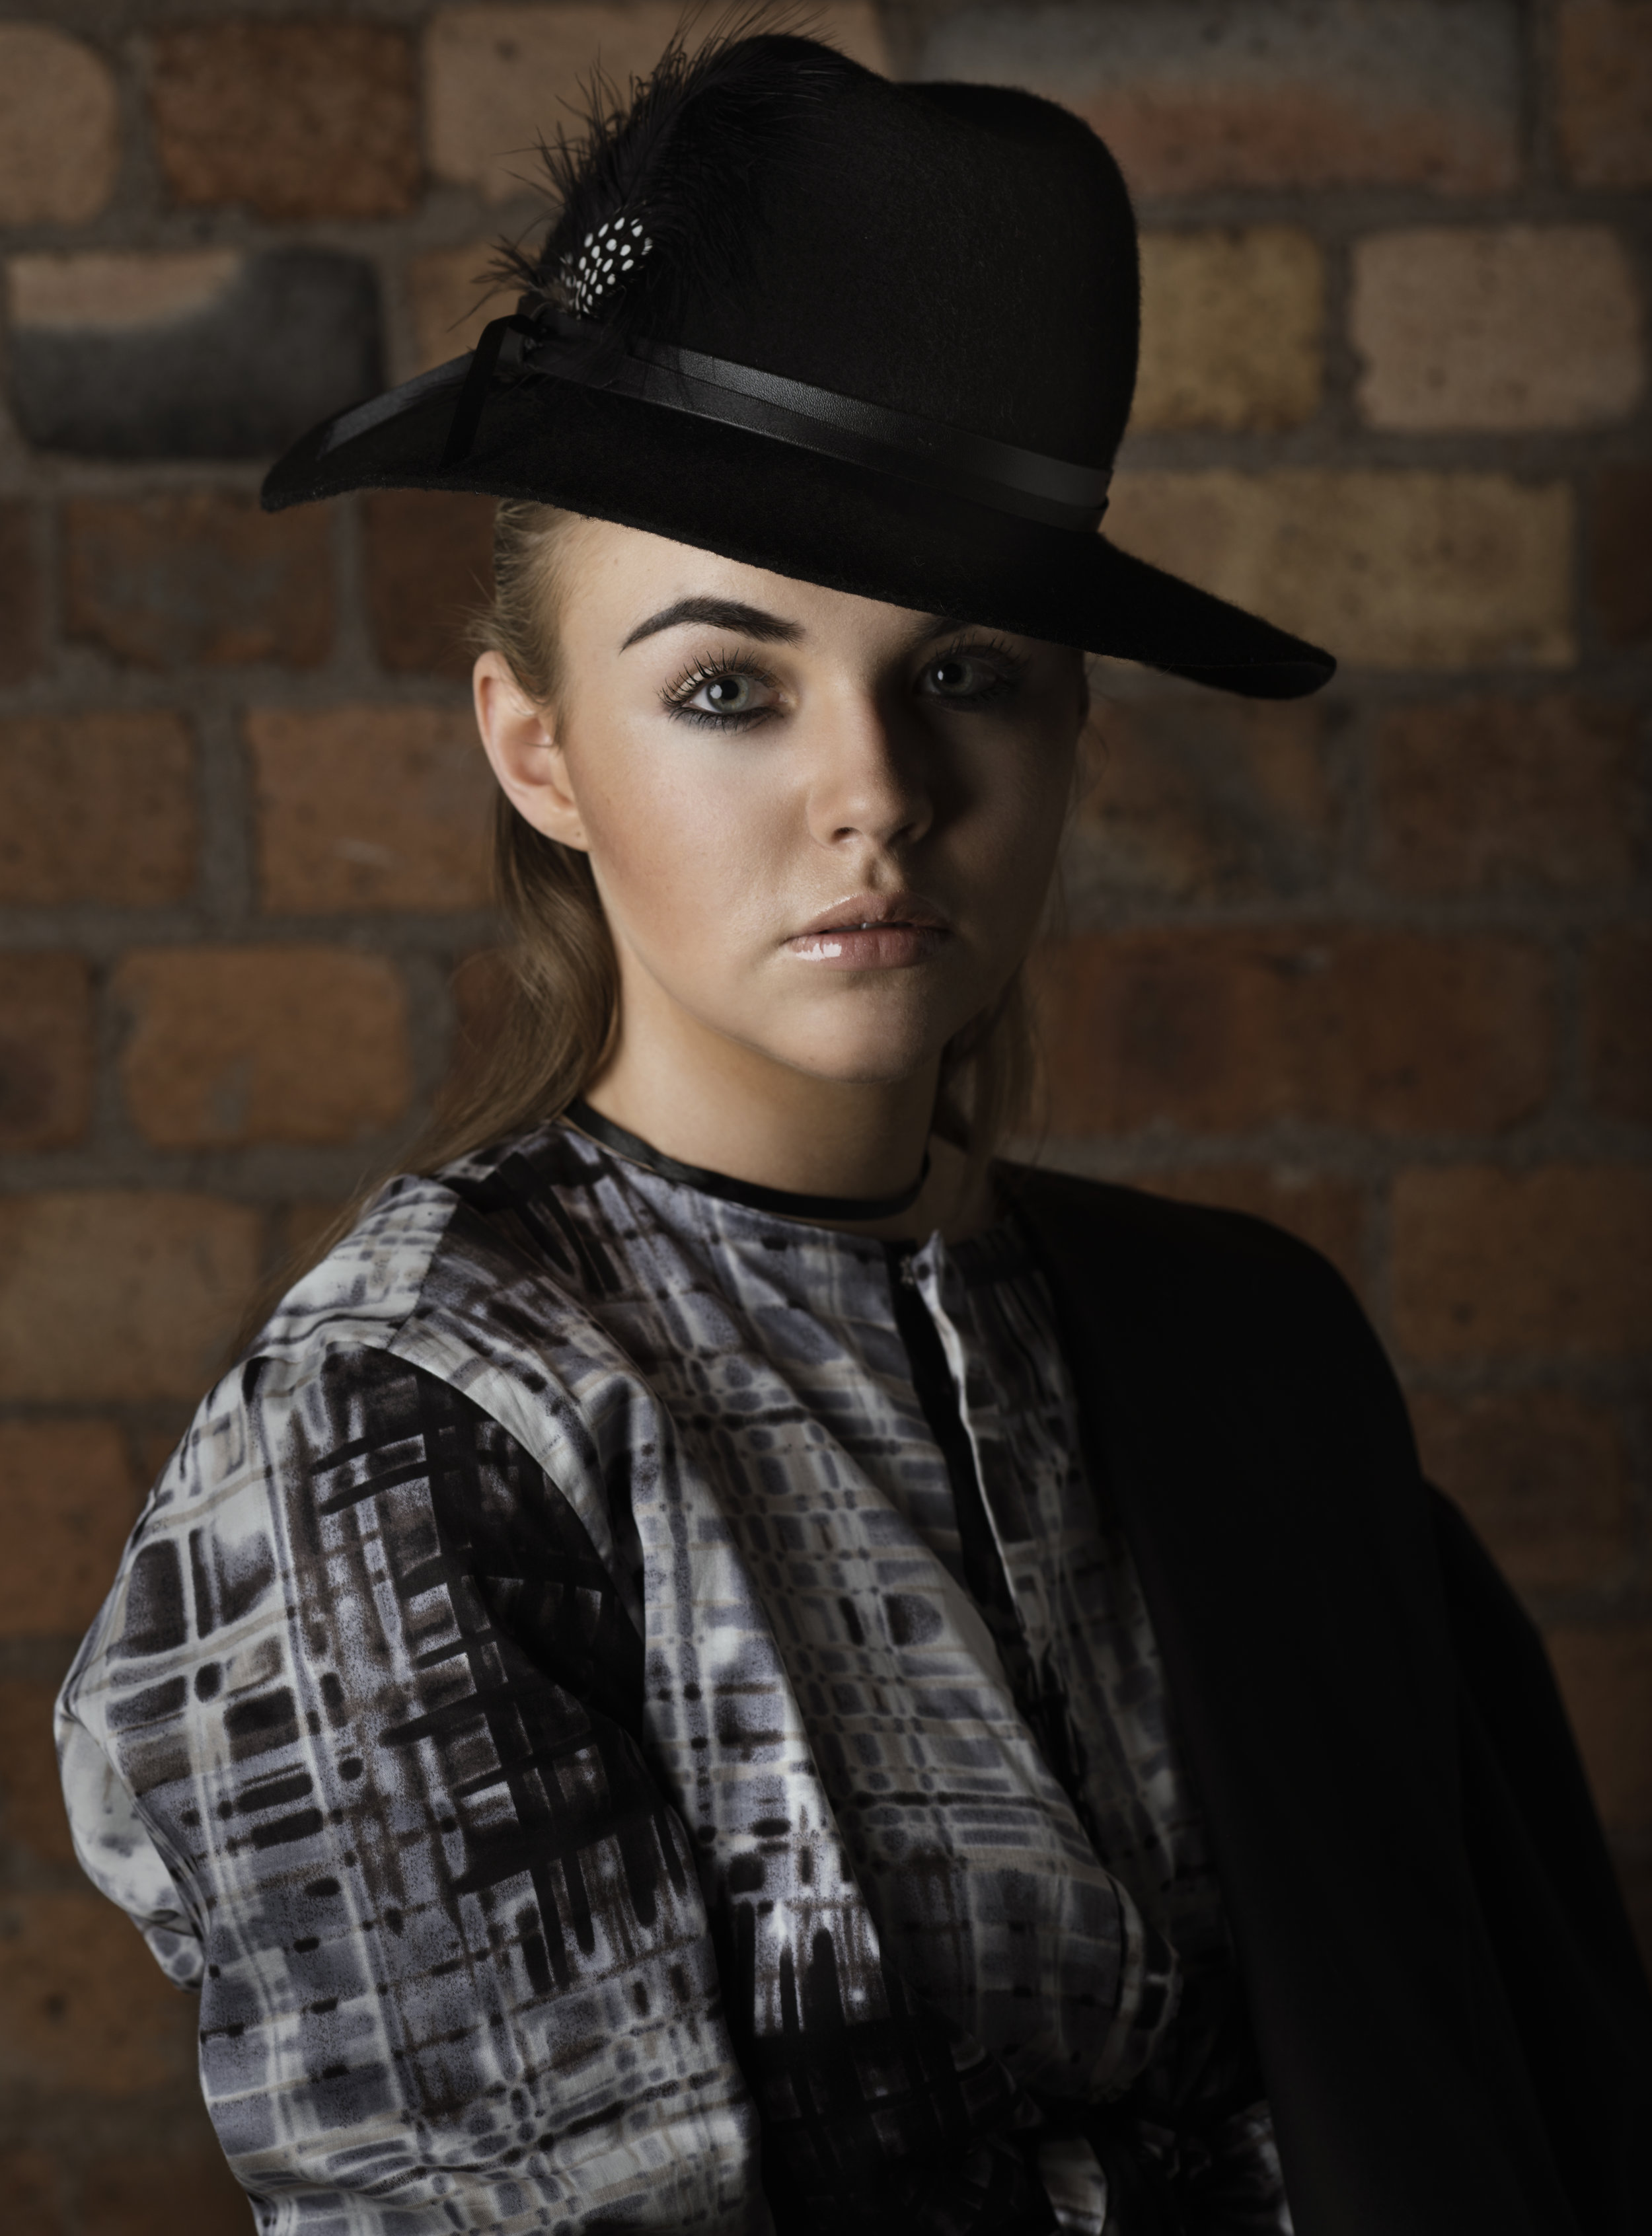 zaramia-ava-zaramiaava-leeds-fashion-designer-ethical-sustainable-glasses-versatile-drape-wrap-top-wrap-top-jacket-mio-black-white-grey-styling-hat-studio-womenswear-photoshoot-8